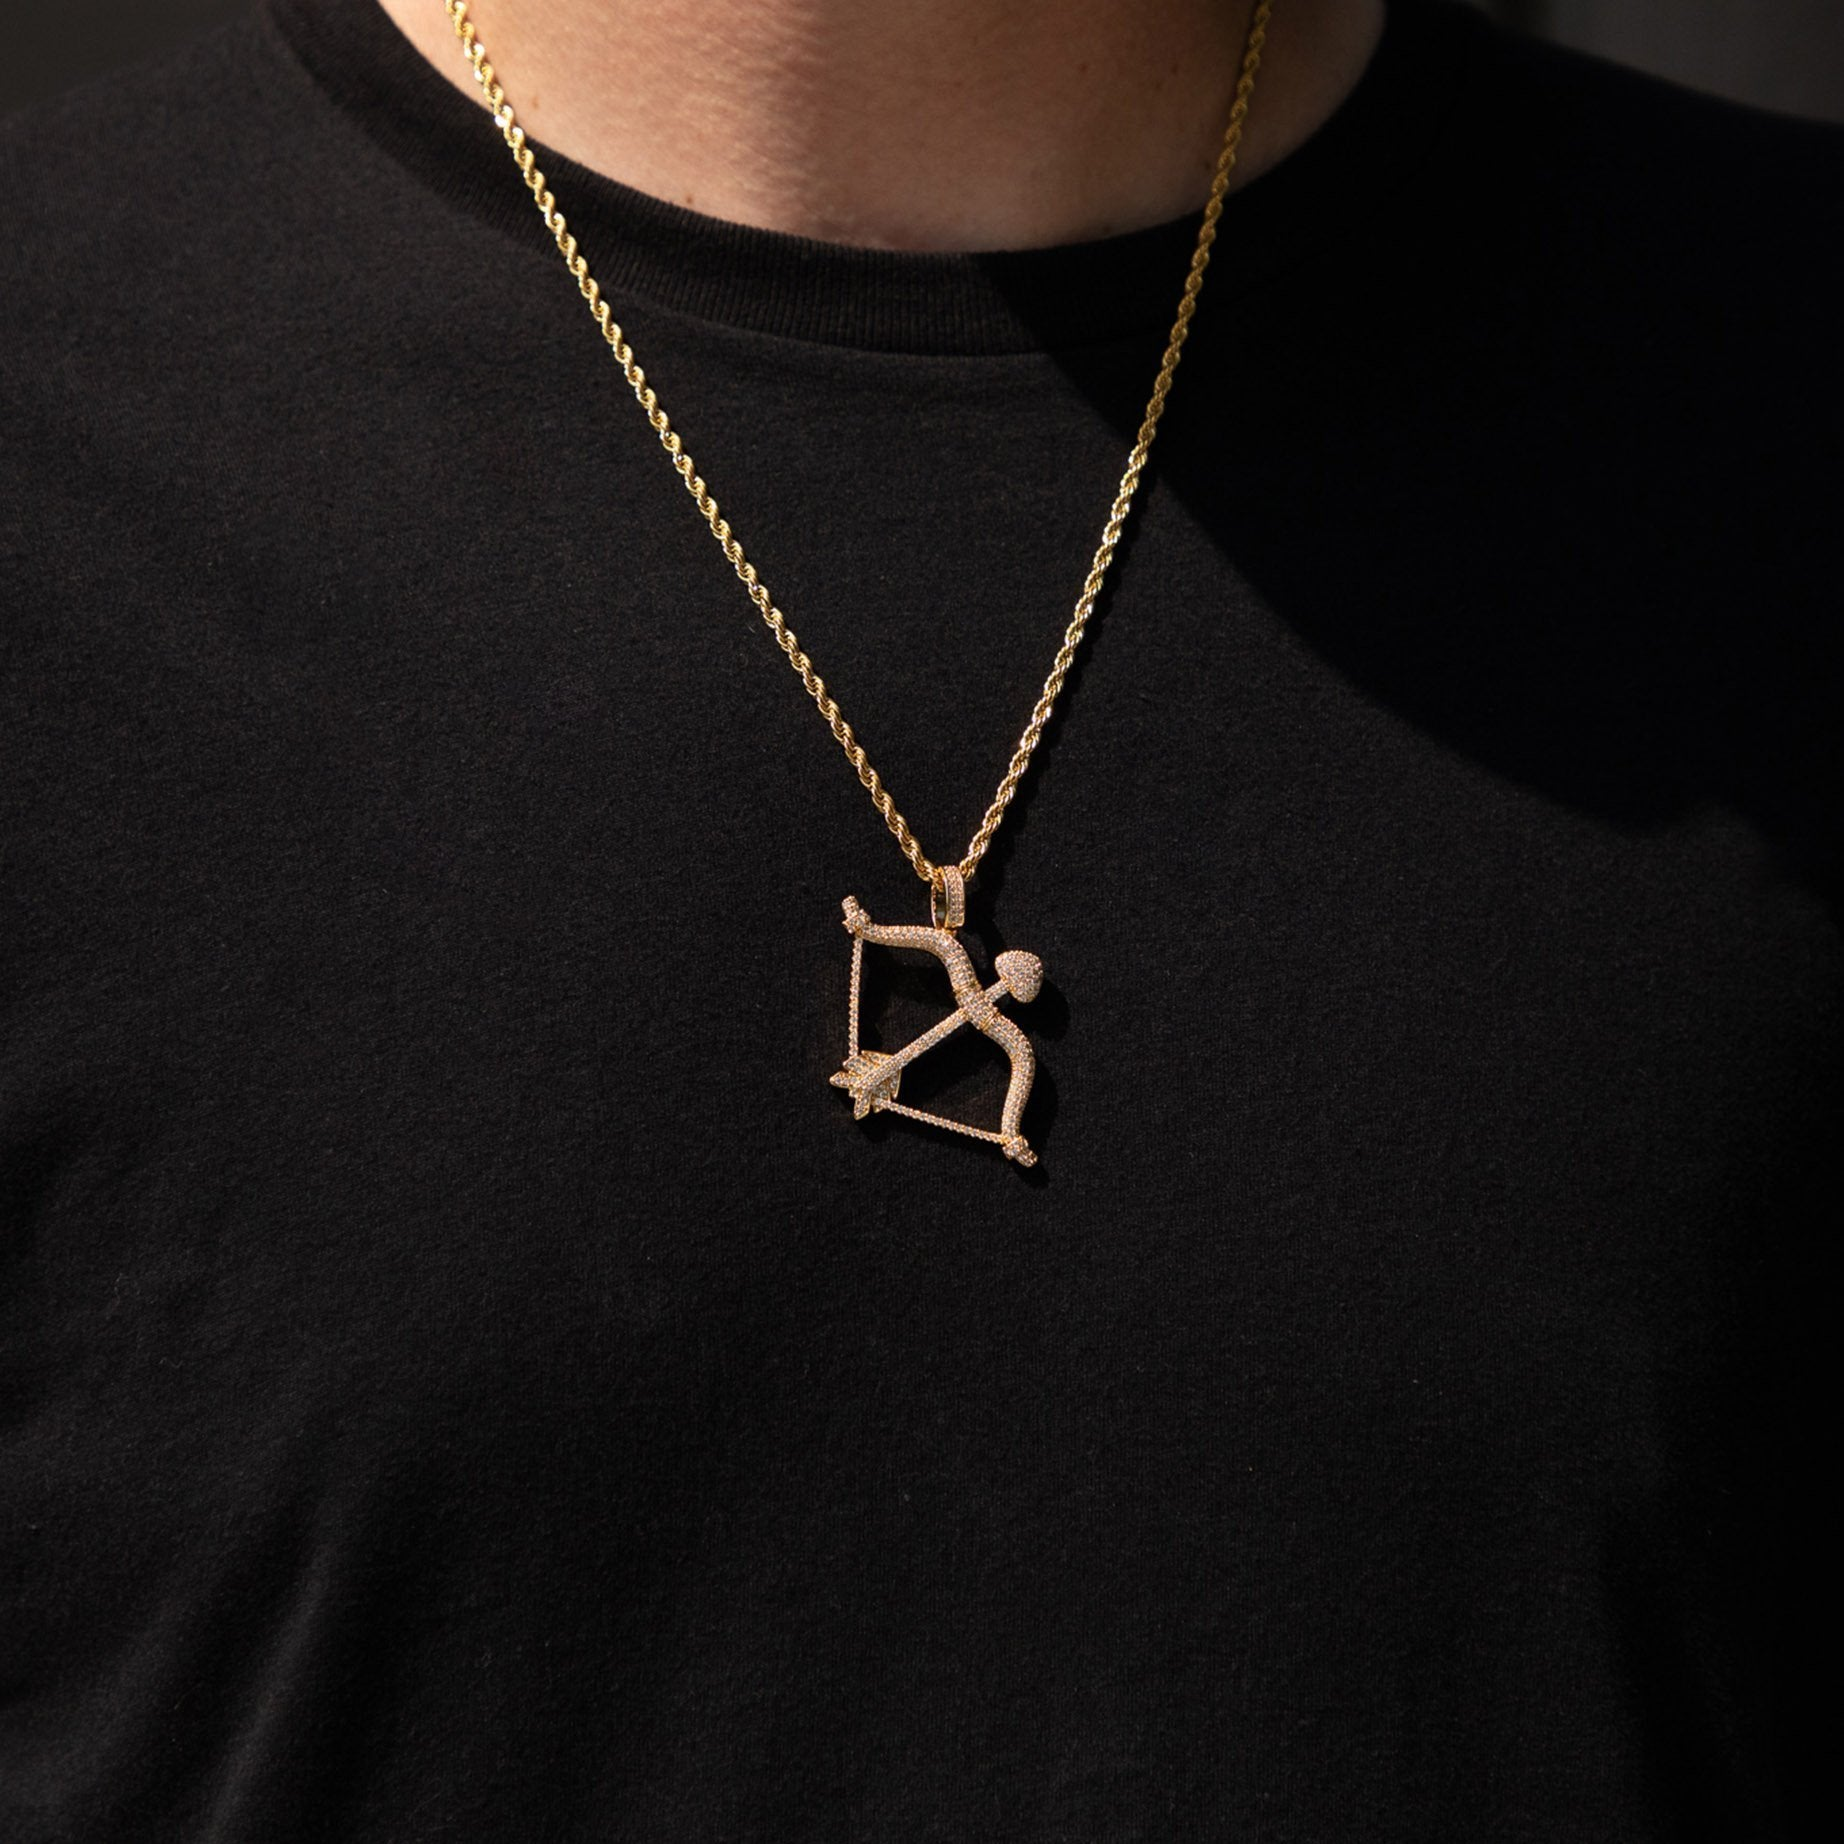 Iced Gold Bow Pendant - Got Drip - Jewelry - Ice - Jake Paul